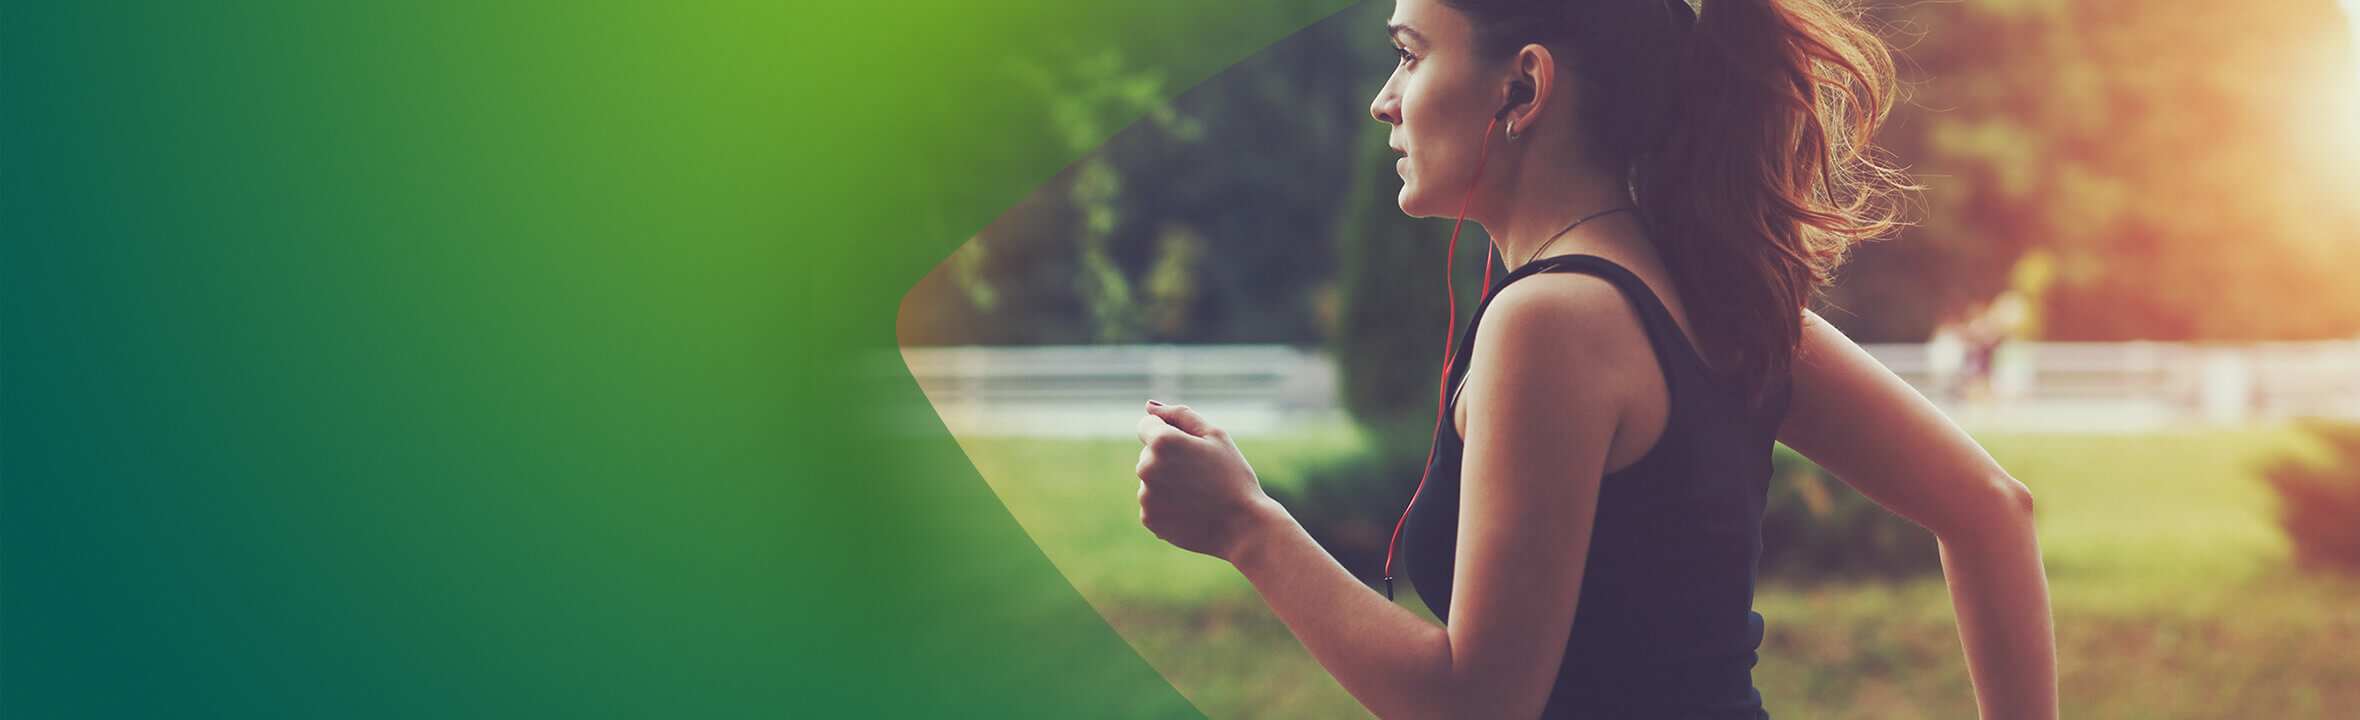 NICORETTE® First Week Challenge. The first week of quitting might be the toughest part of your journey, but it's also the most important. That's why we created the NICORETTE® First Week Challenge to help you give yourself the best chance of becoming tobacco and nicotine-free.